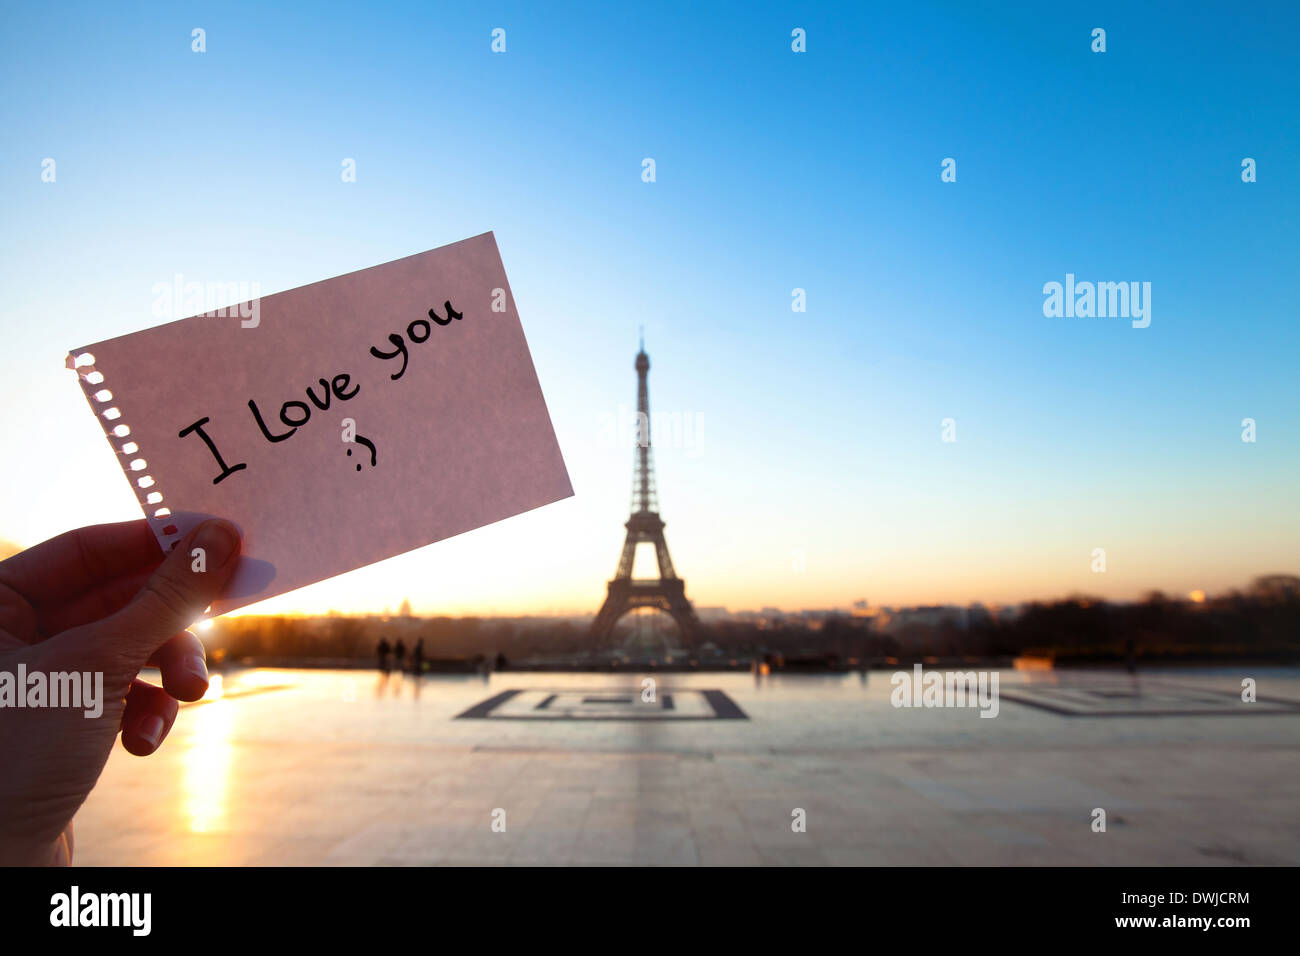 hand holding paper with 'i love you' message - Stock Image